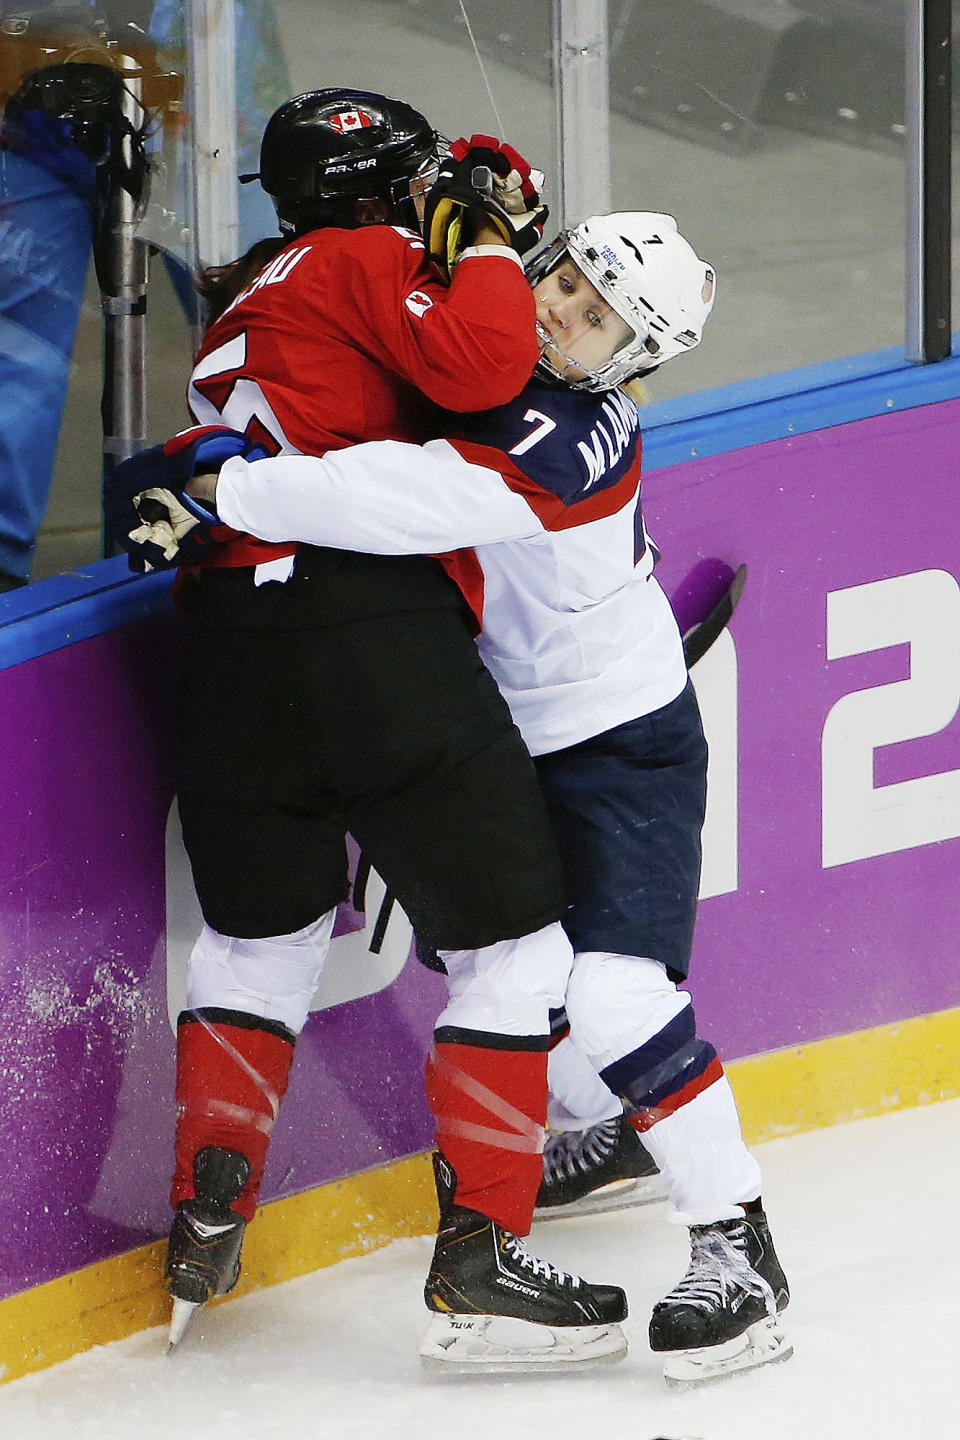 Monique Lamoureux of the United States (7) pins Lauriane Rougeau of Canada (5) against the boards during the first period of the women's gold medal ice hockey game at the 2014 Winter Olympics, Thursday, Feb. 20, 2014, in Sochi, Russia. (AP Photo/Julio Cortez)